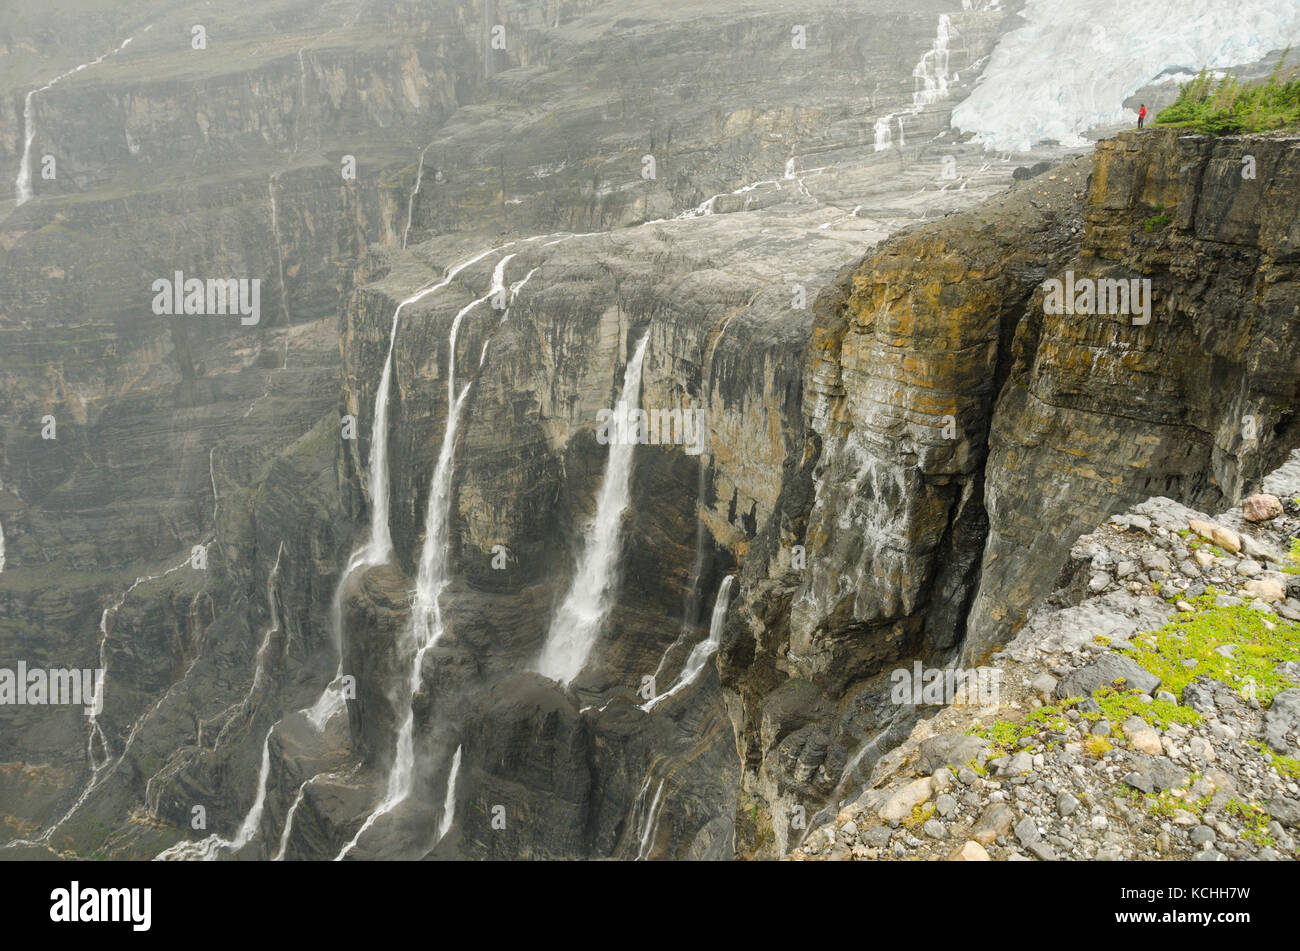 Overlooking a massive canyon on the Icefall Traverse, BC Rockies - Stock Image